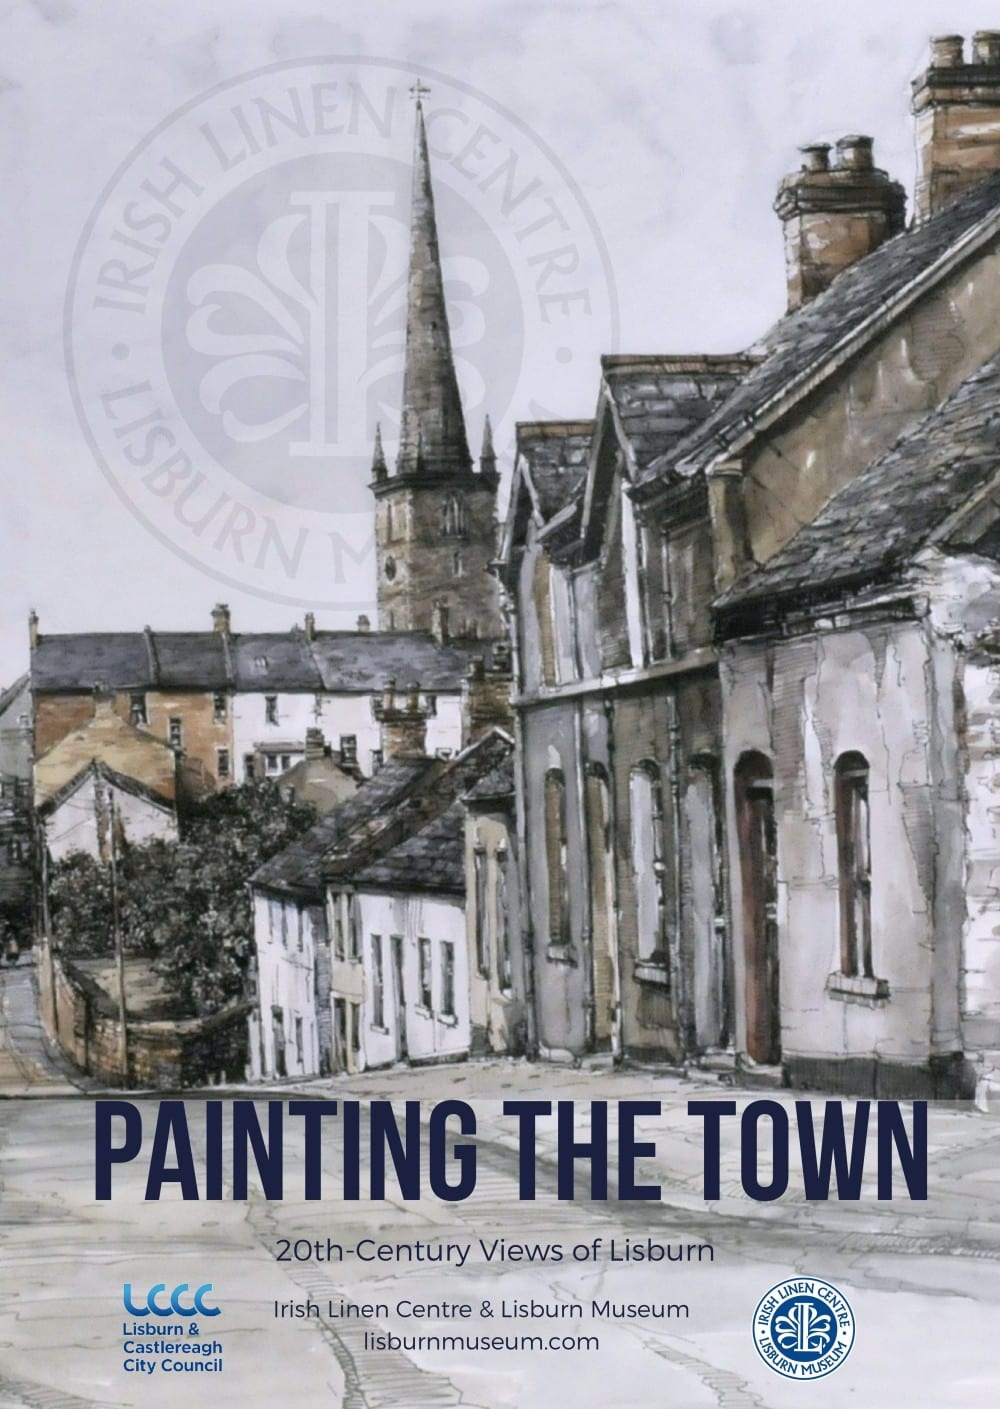 Painting the Town - 20th Century Views of Lisburn Poster - Irish Linen Centre Lisburn Museum